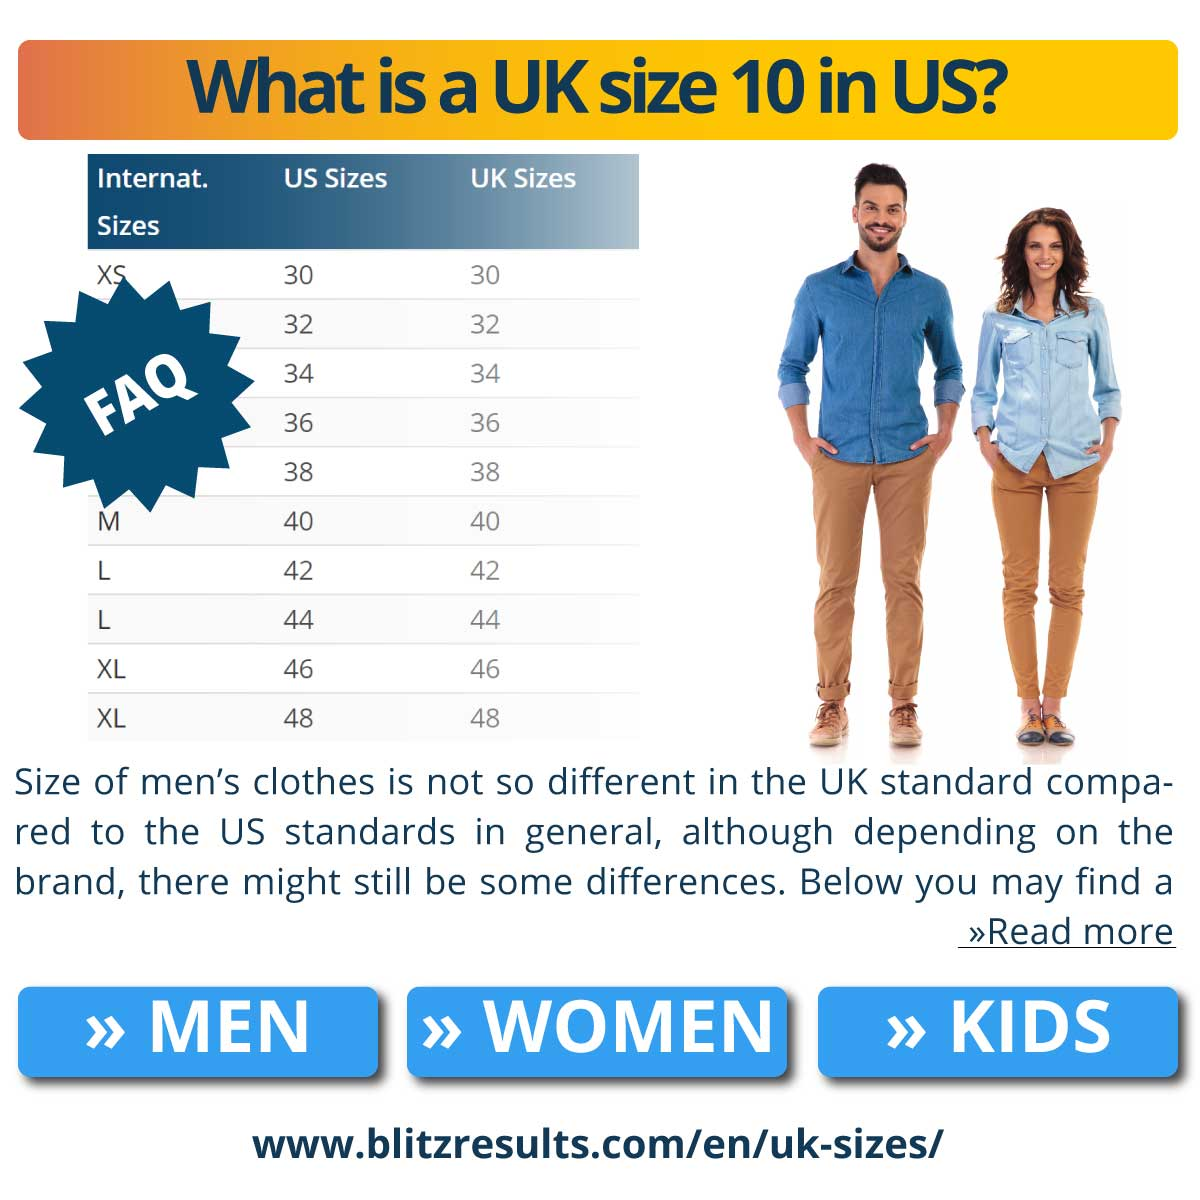 What is a UK size 10 in US?